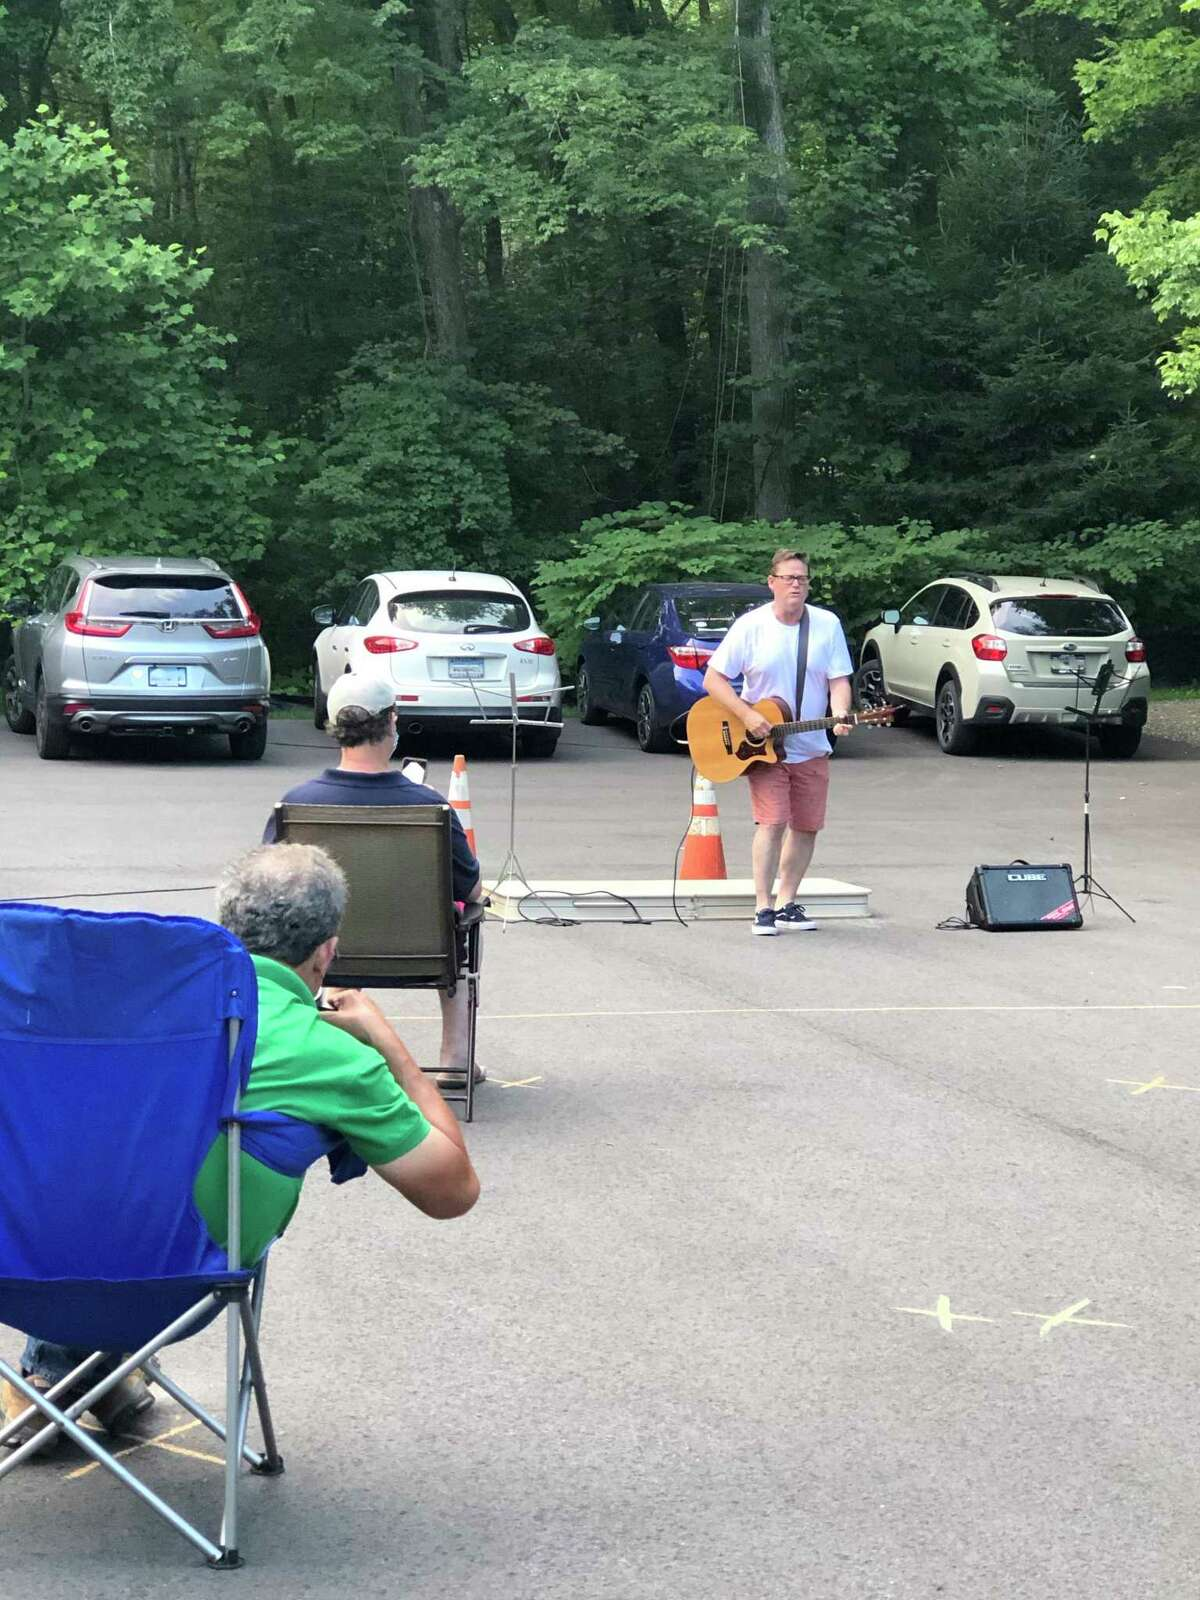 Thursday evening open mic nights have returned to the JCC in Sherman, with social distancing for everyone's safety. Sherman First Selectman Don Lowe is seen here during a recent performance.